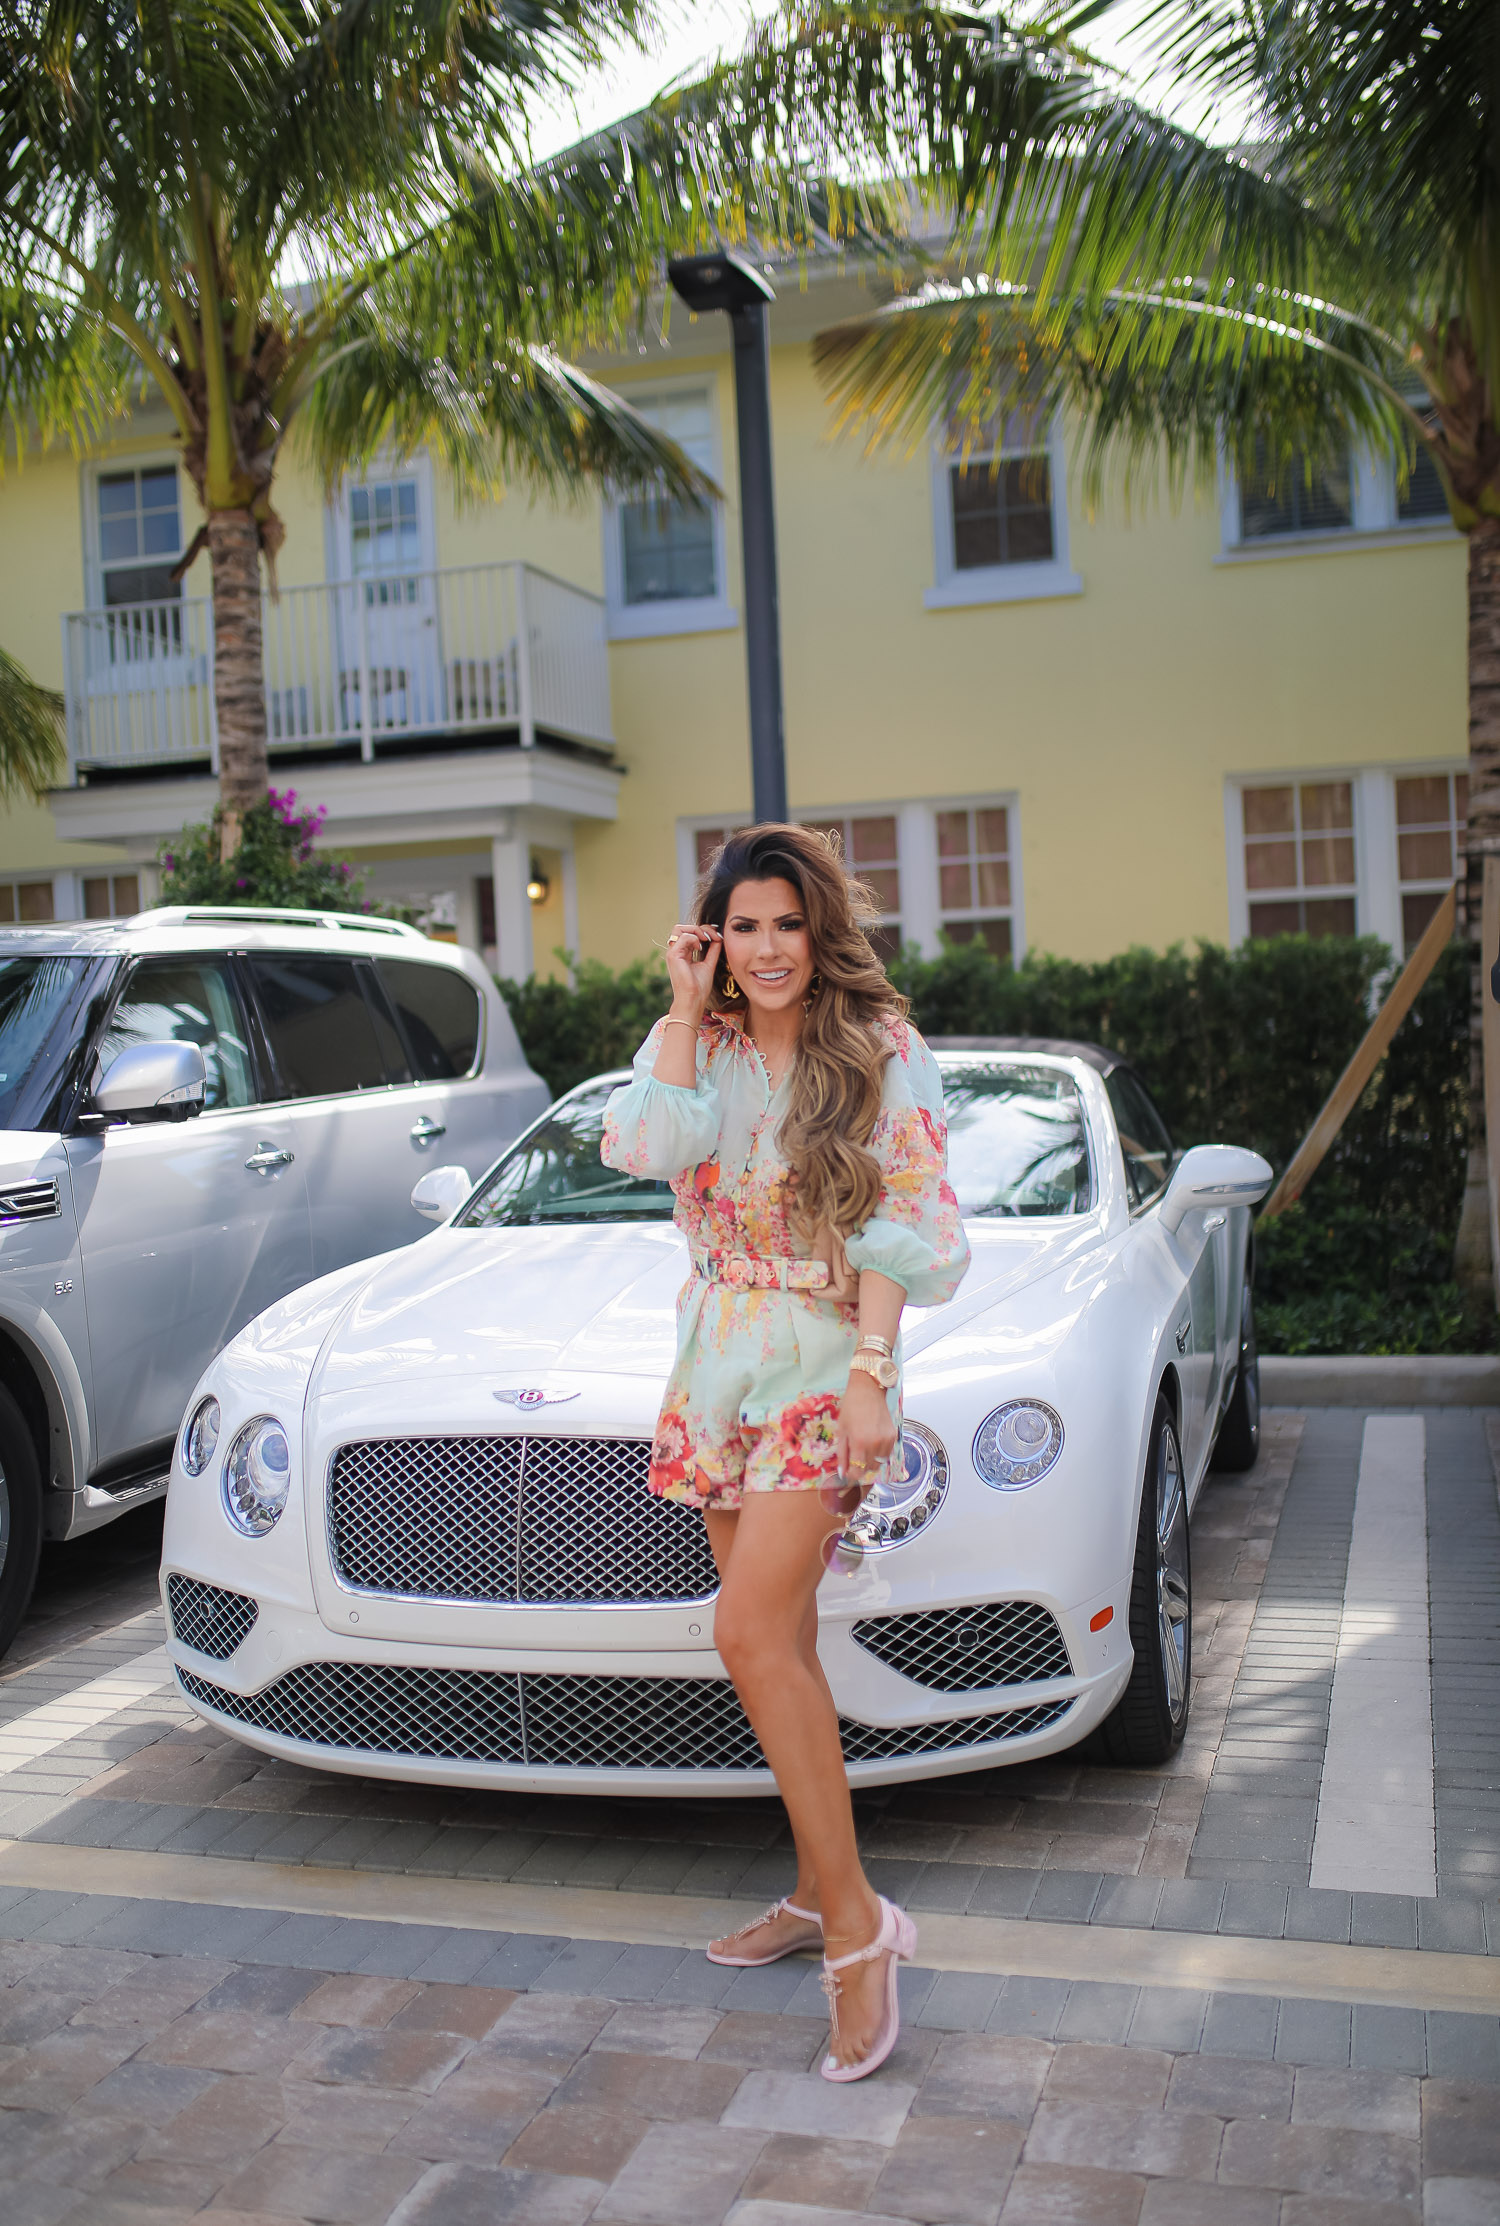 Palm beach where to stay, White elephant palm beach, Zimmerman Mae Floral Shorts and Blouse, Tiktok viral jewelry anklet, Amazon Tiktok Viral anklet, Chanel Large Button Paris Gold earrings, high end fashion blog, Emily gemma, the sweetest thing blog, luxury travel blog, palm beach white elephant | Zimmermann Outfit by popular US fashion blog, The Sweetest Thing: image of Emily Gemma standing by a white Bentley and wearing a Zimmerman Mae Floral Shorts and Blouse, Tiktok viral jewelry anklet, Amazon Tiktok Viral anklet, Chanel Large Button Paris Gold earrings, Cartier bracelets, gold Rolex watch, Chanel sandals and carrying a Chanel handbag.